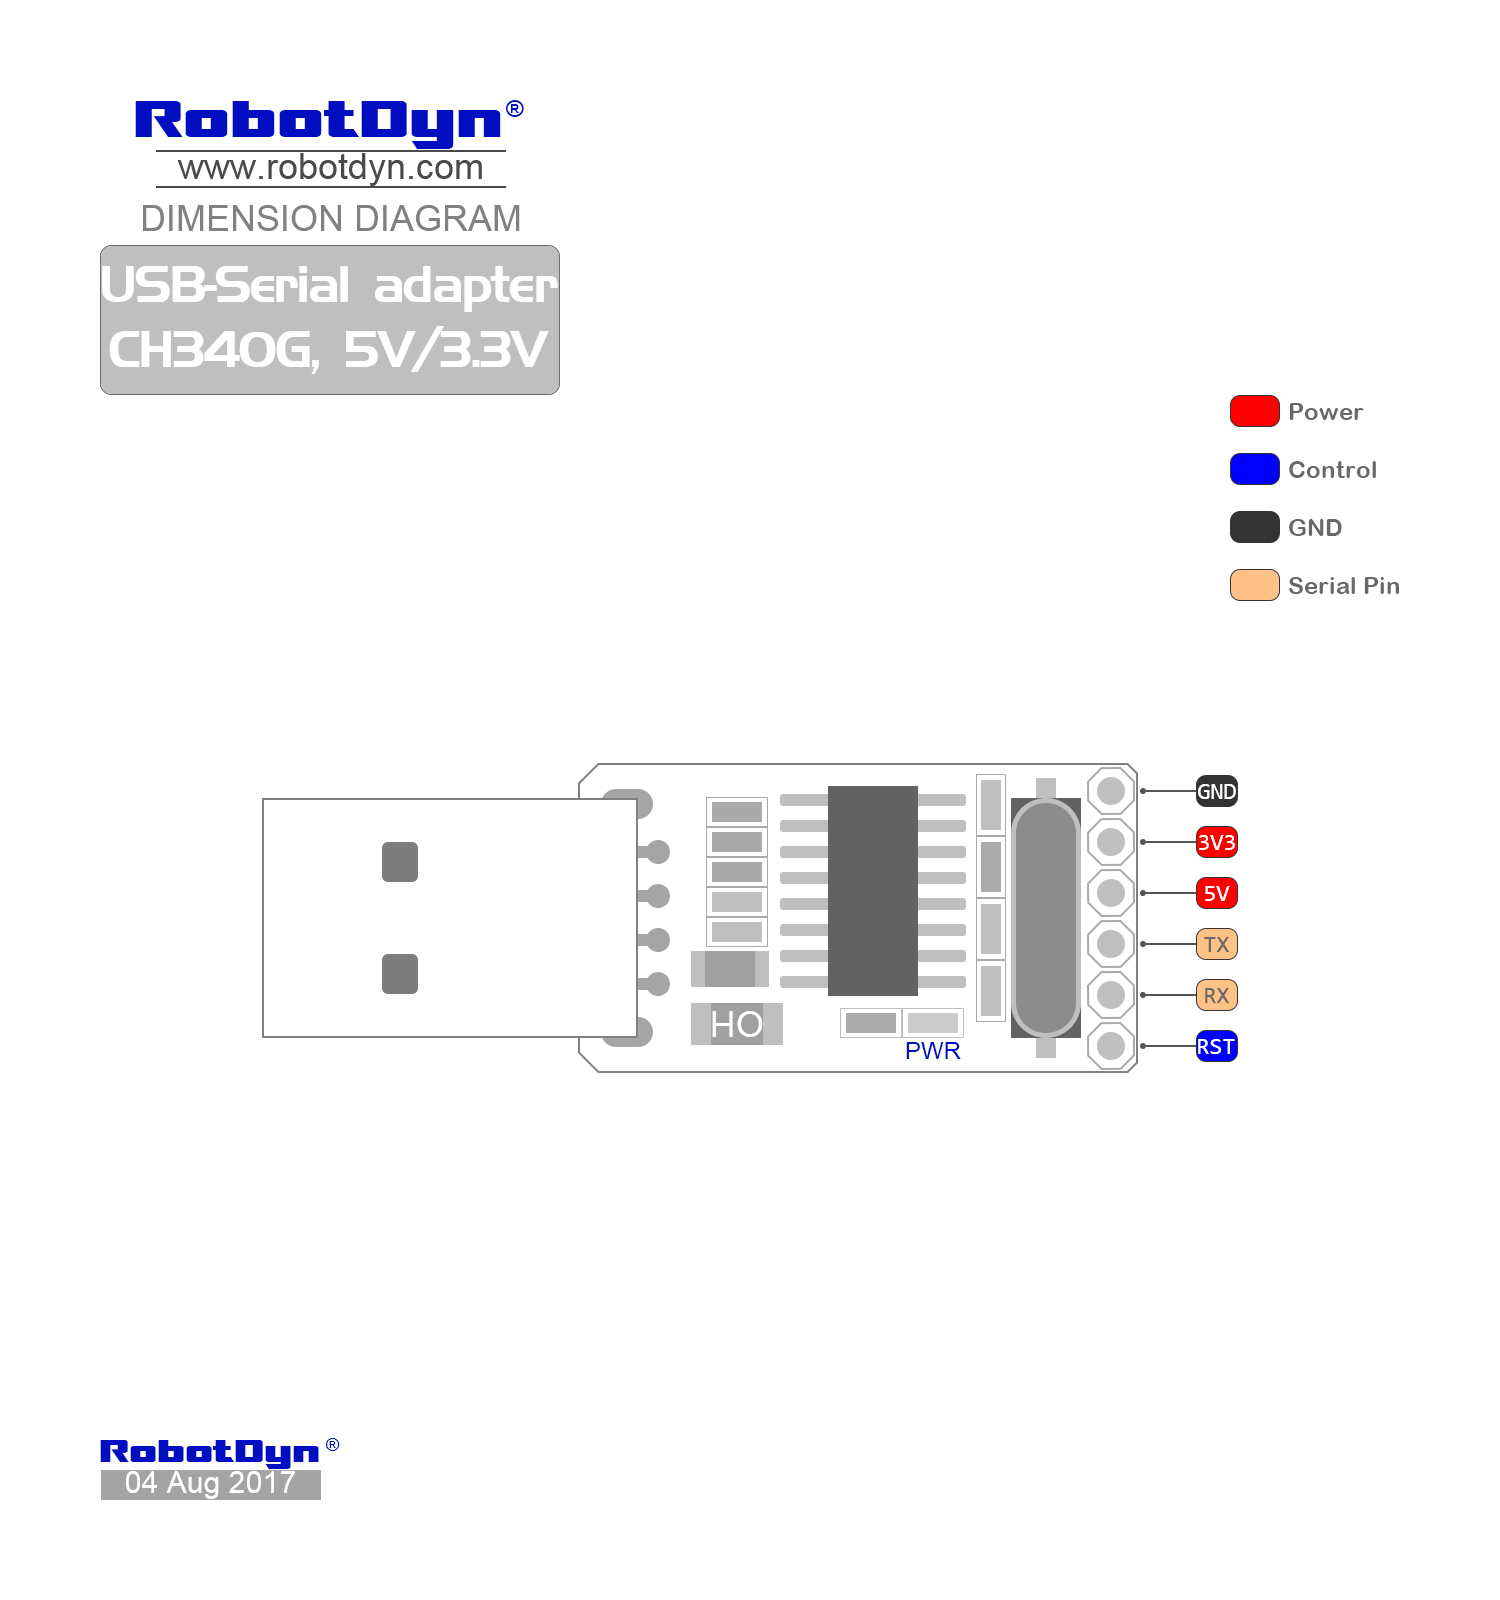 hight resolution of pinout usb serial adapter ch340g 5v 3 3v